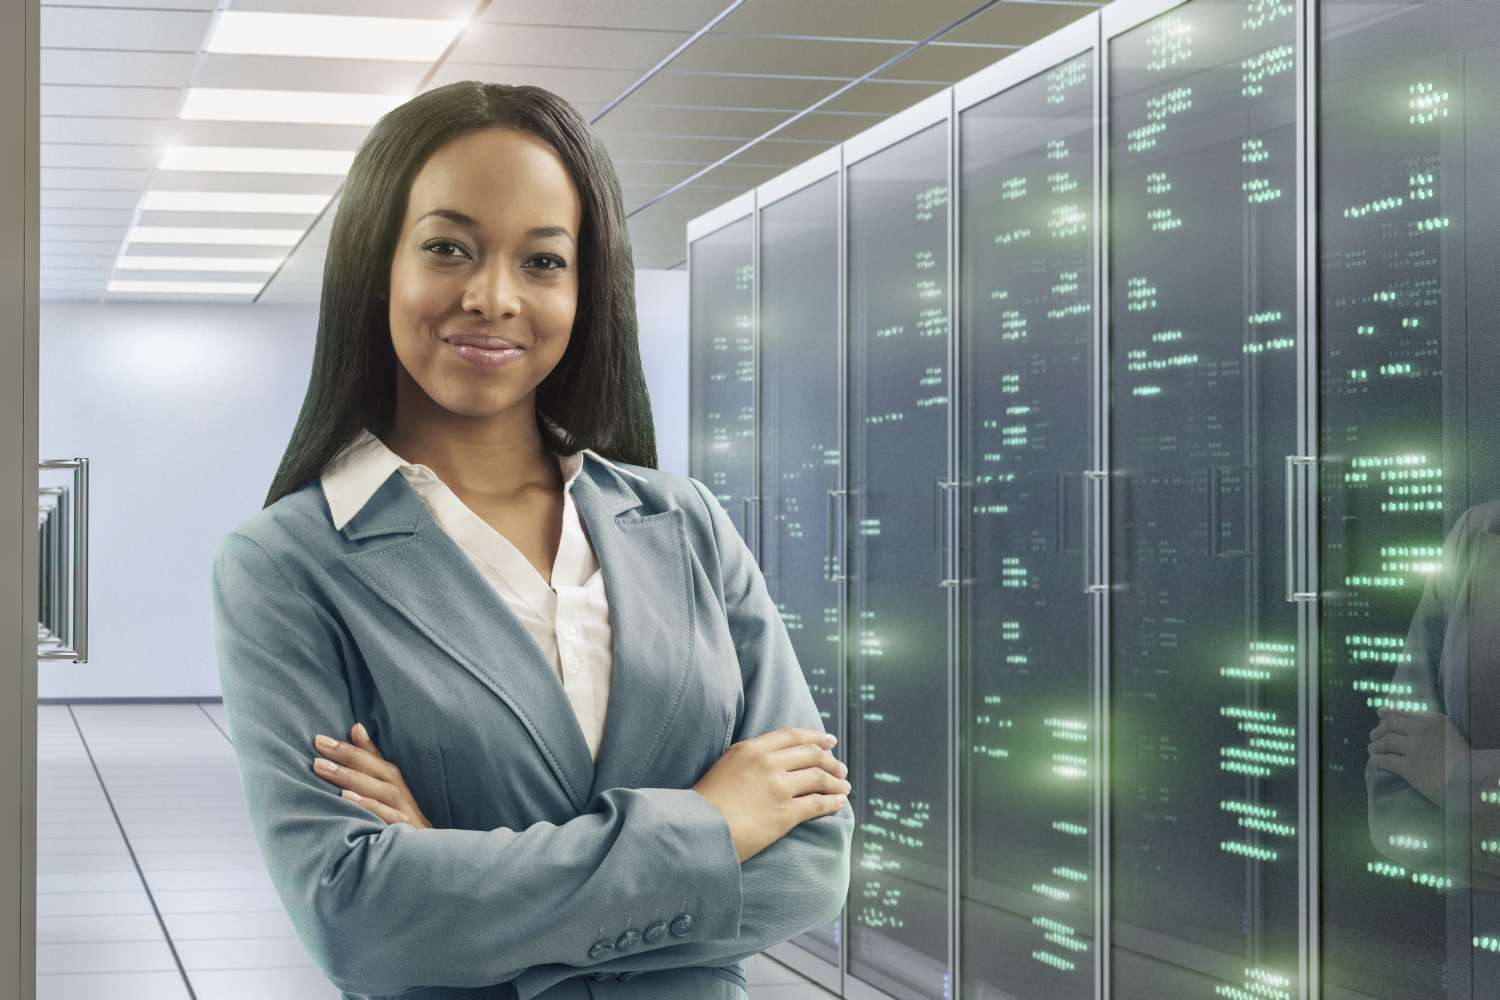 Confident businesswoman considers data lake governance